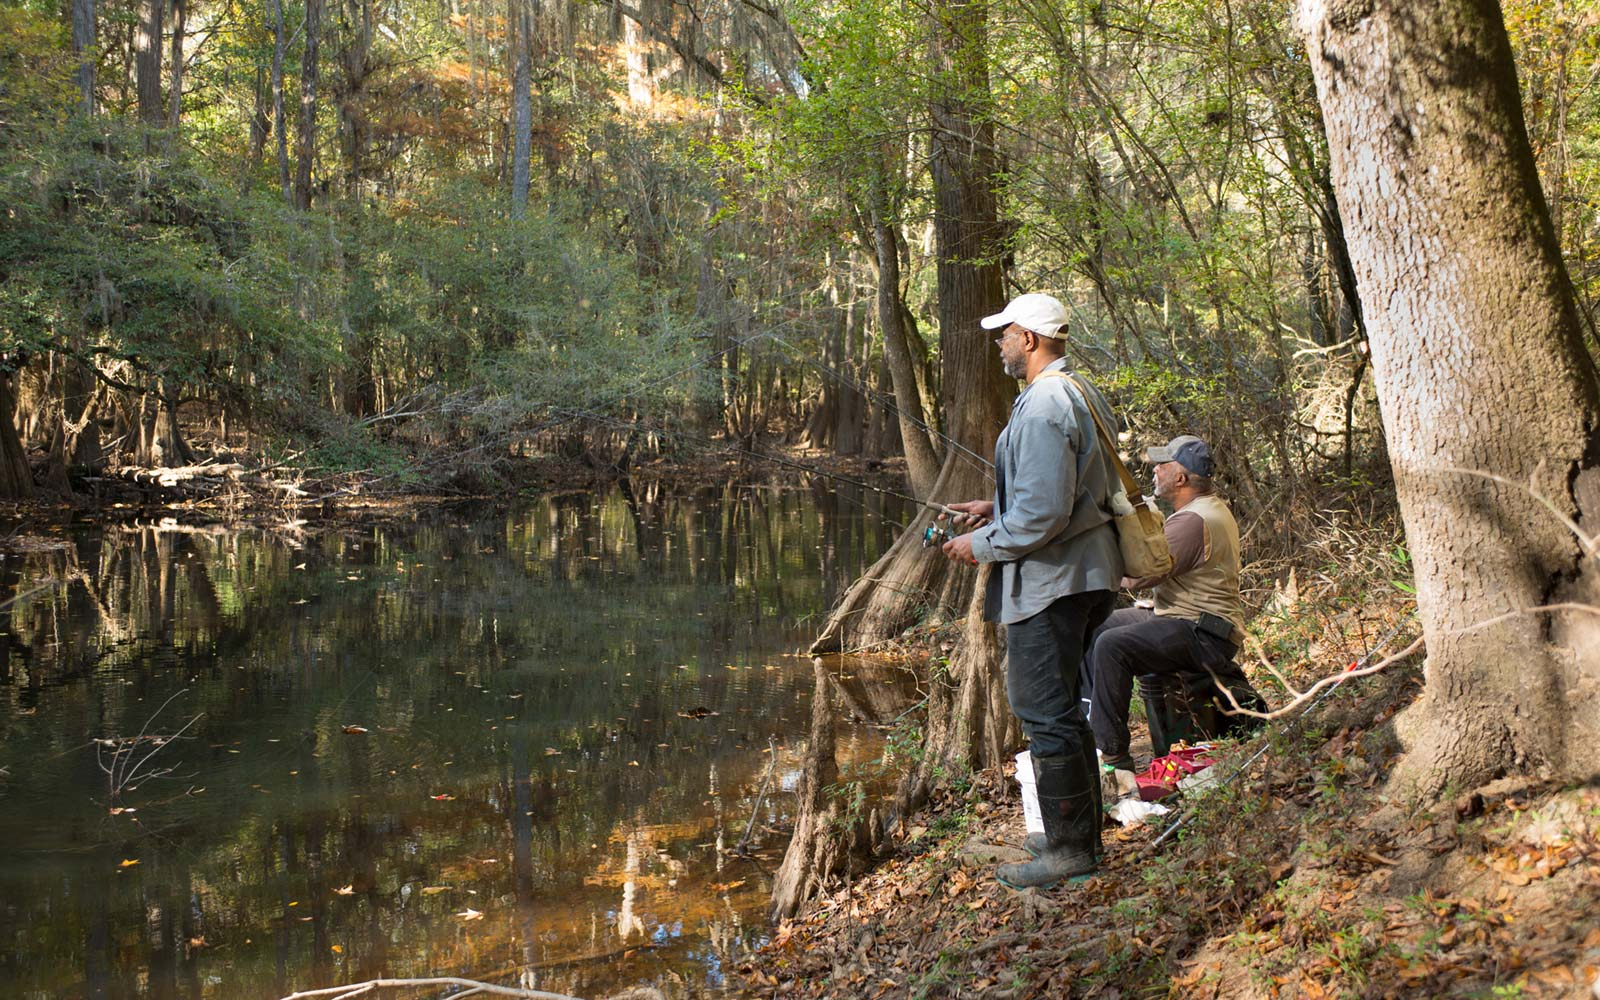 Fishing, Congaree National Park, South Carolina